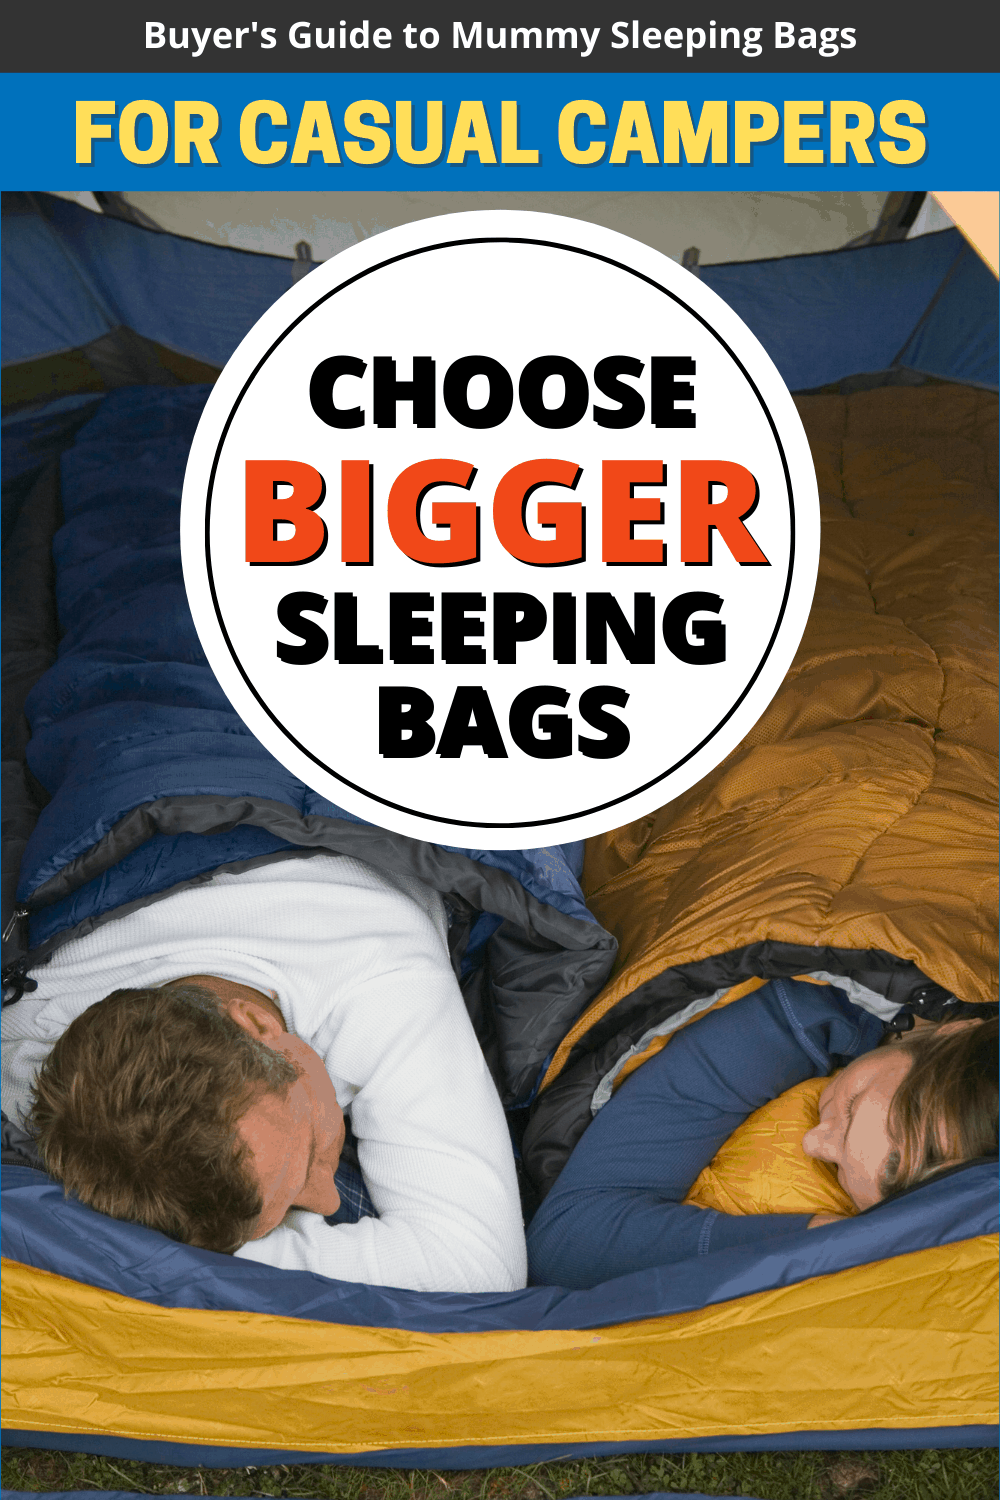 Buyer's Guide to Mummy Sleeping Bags